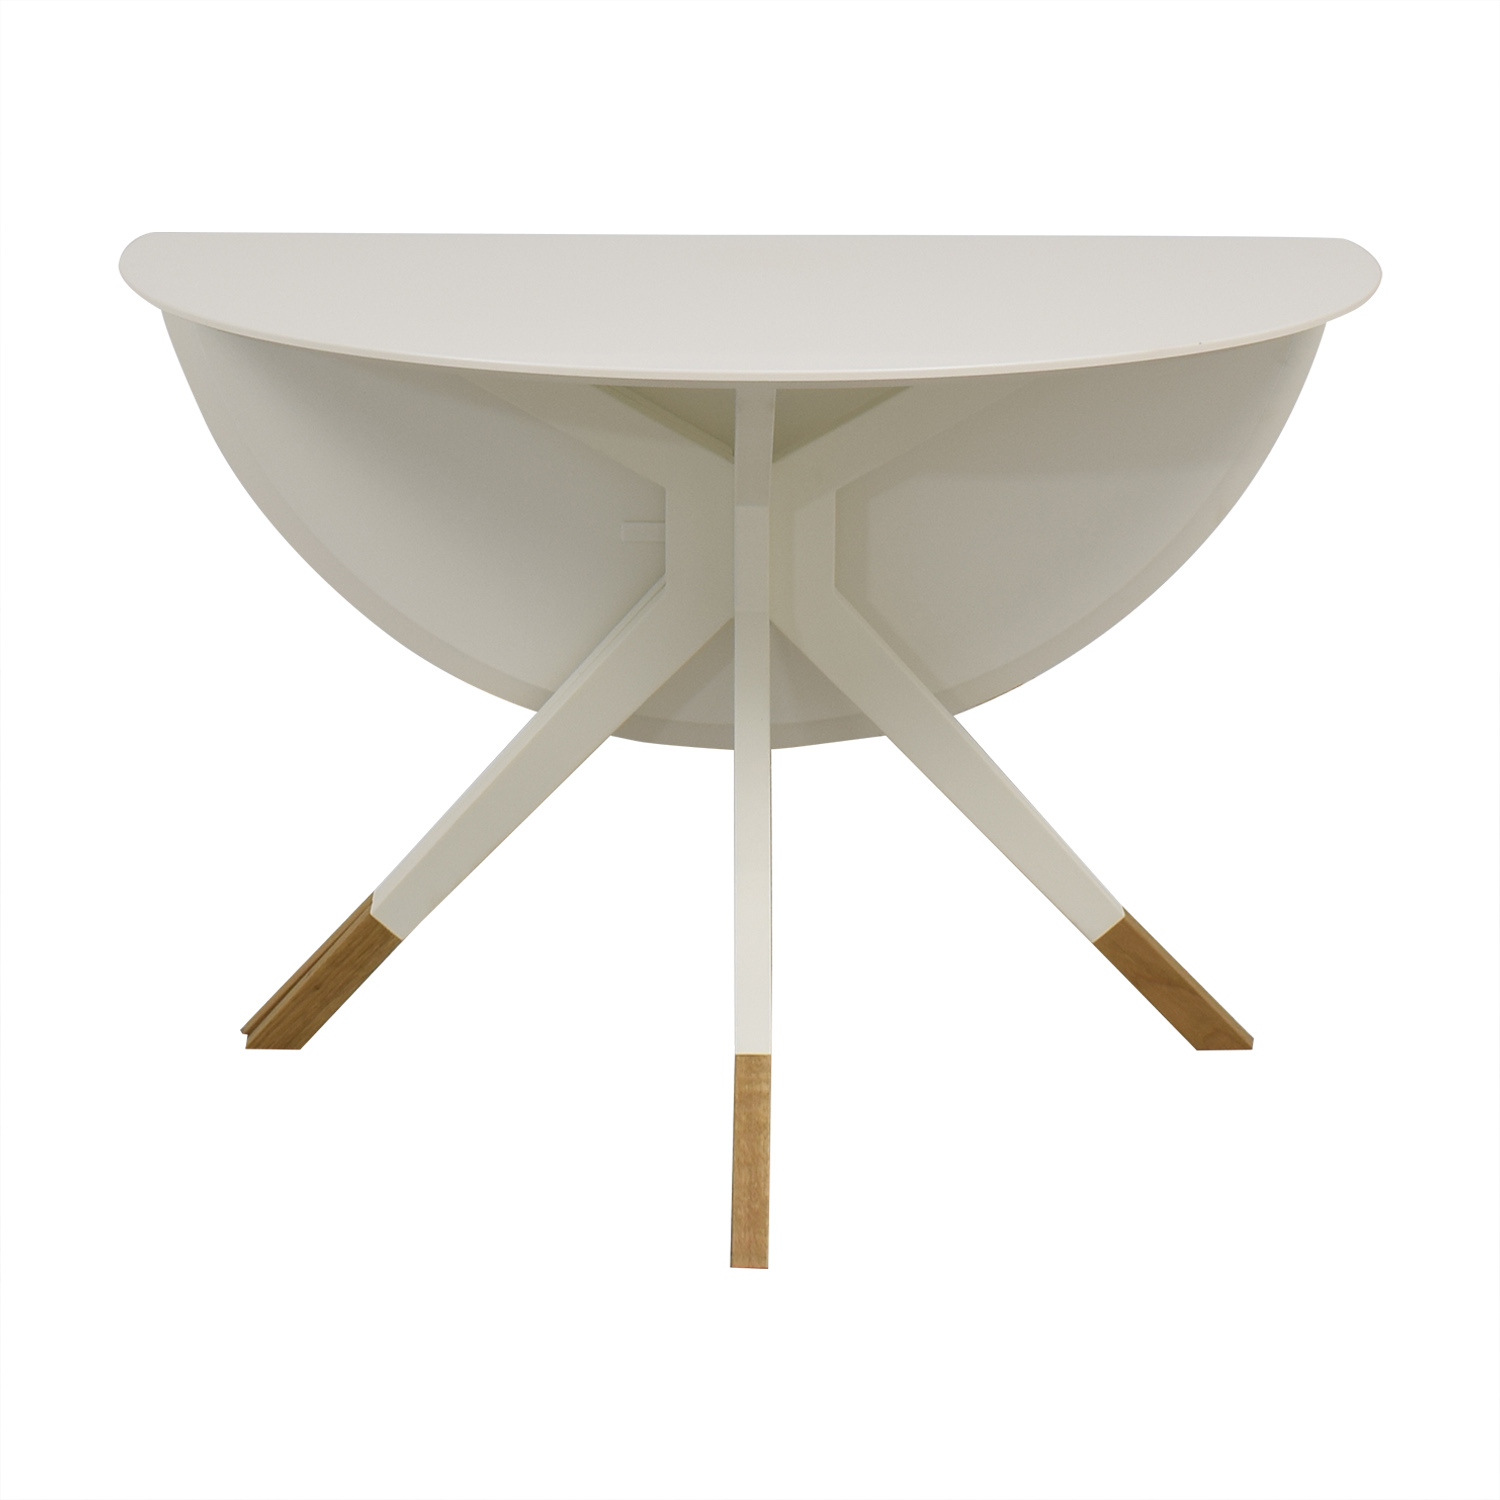 shop BoConcept BoConcept Billund Table online